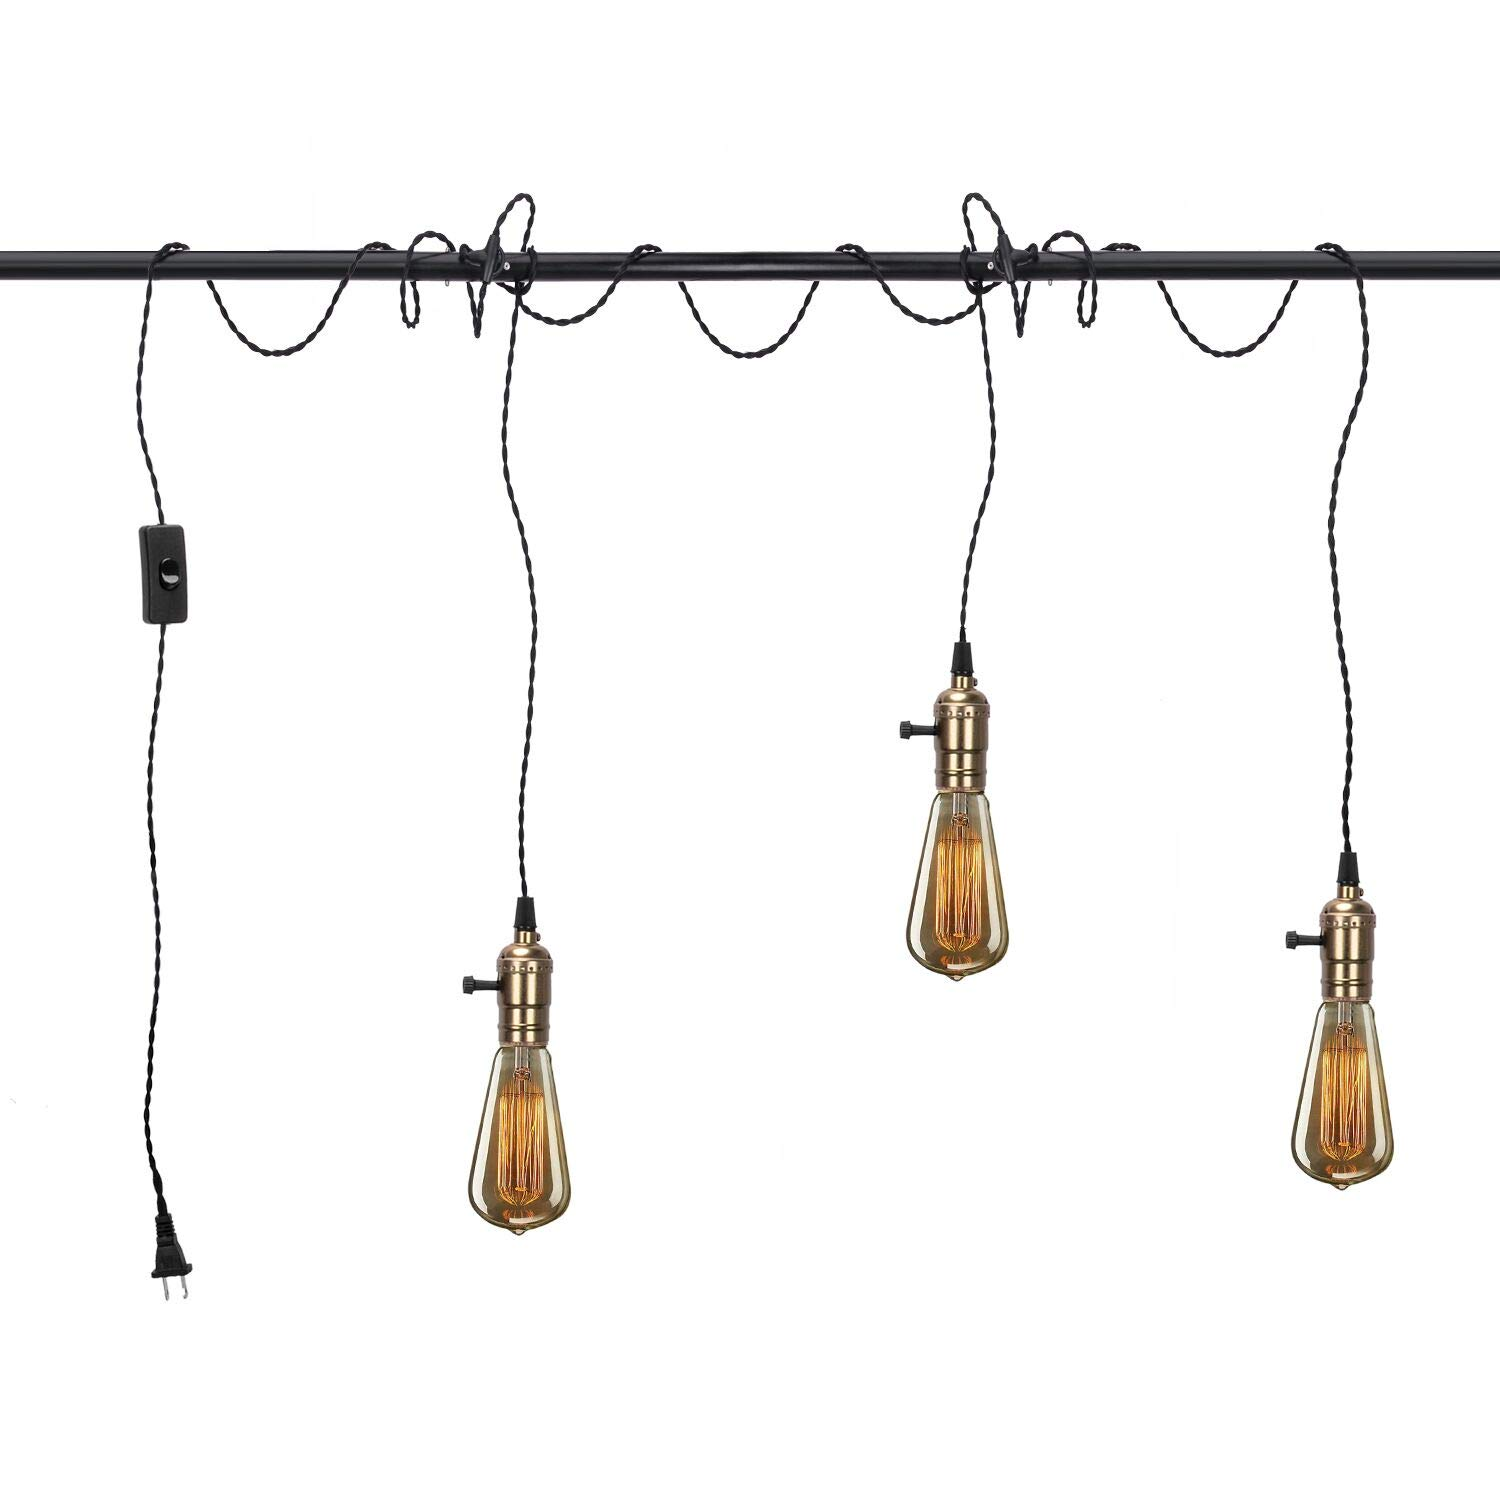 Vintage Pendant Light Kit Cord with Switch and Triple E26 E27 Industrial Light Socket Lamp Holder 25FT Twisted Black Cloth Bulb Cord Plug in Hanging Light Fixture by Melunar